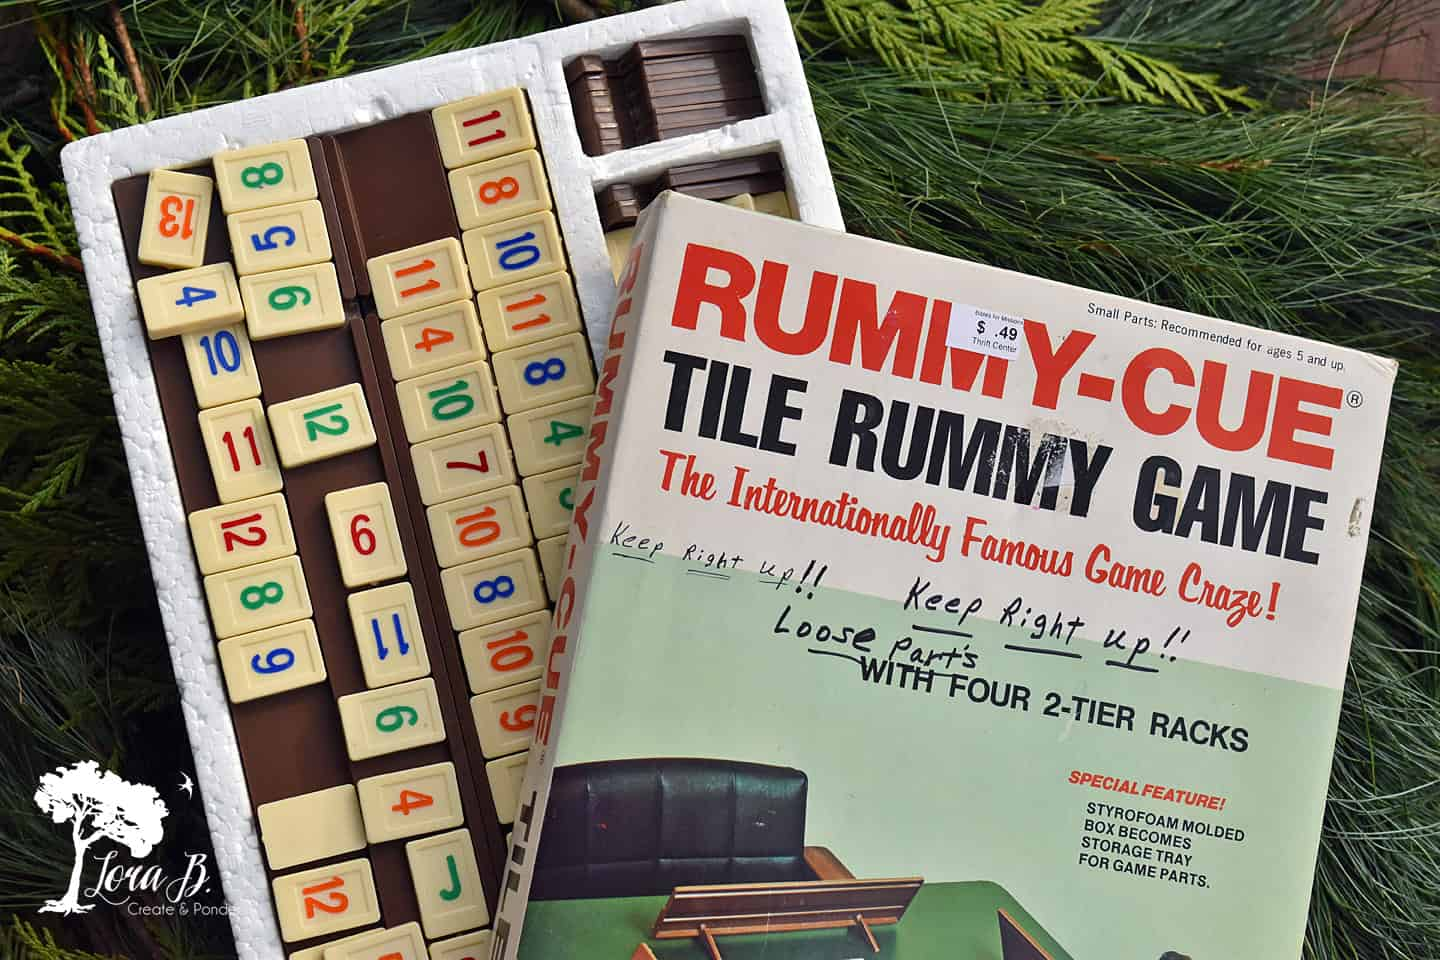 Vintage Rummy-Cue Game